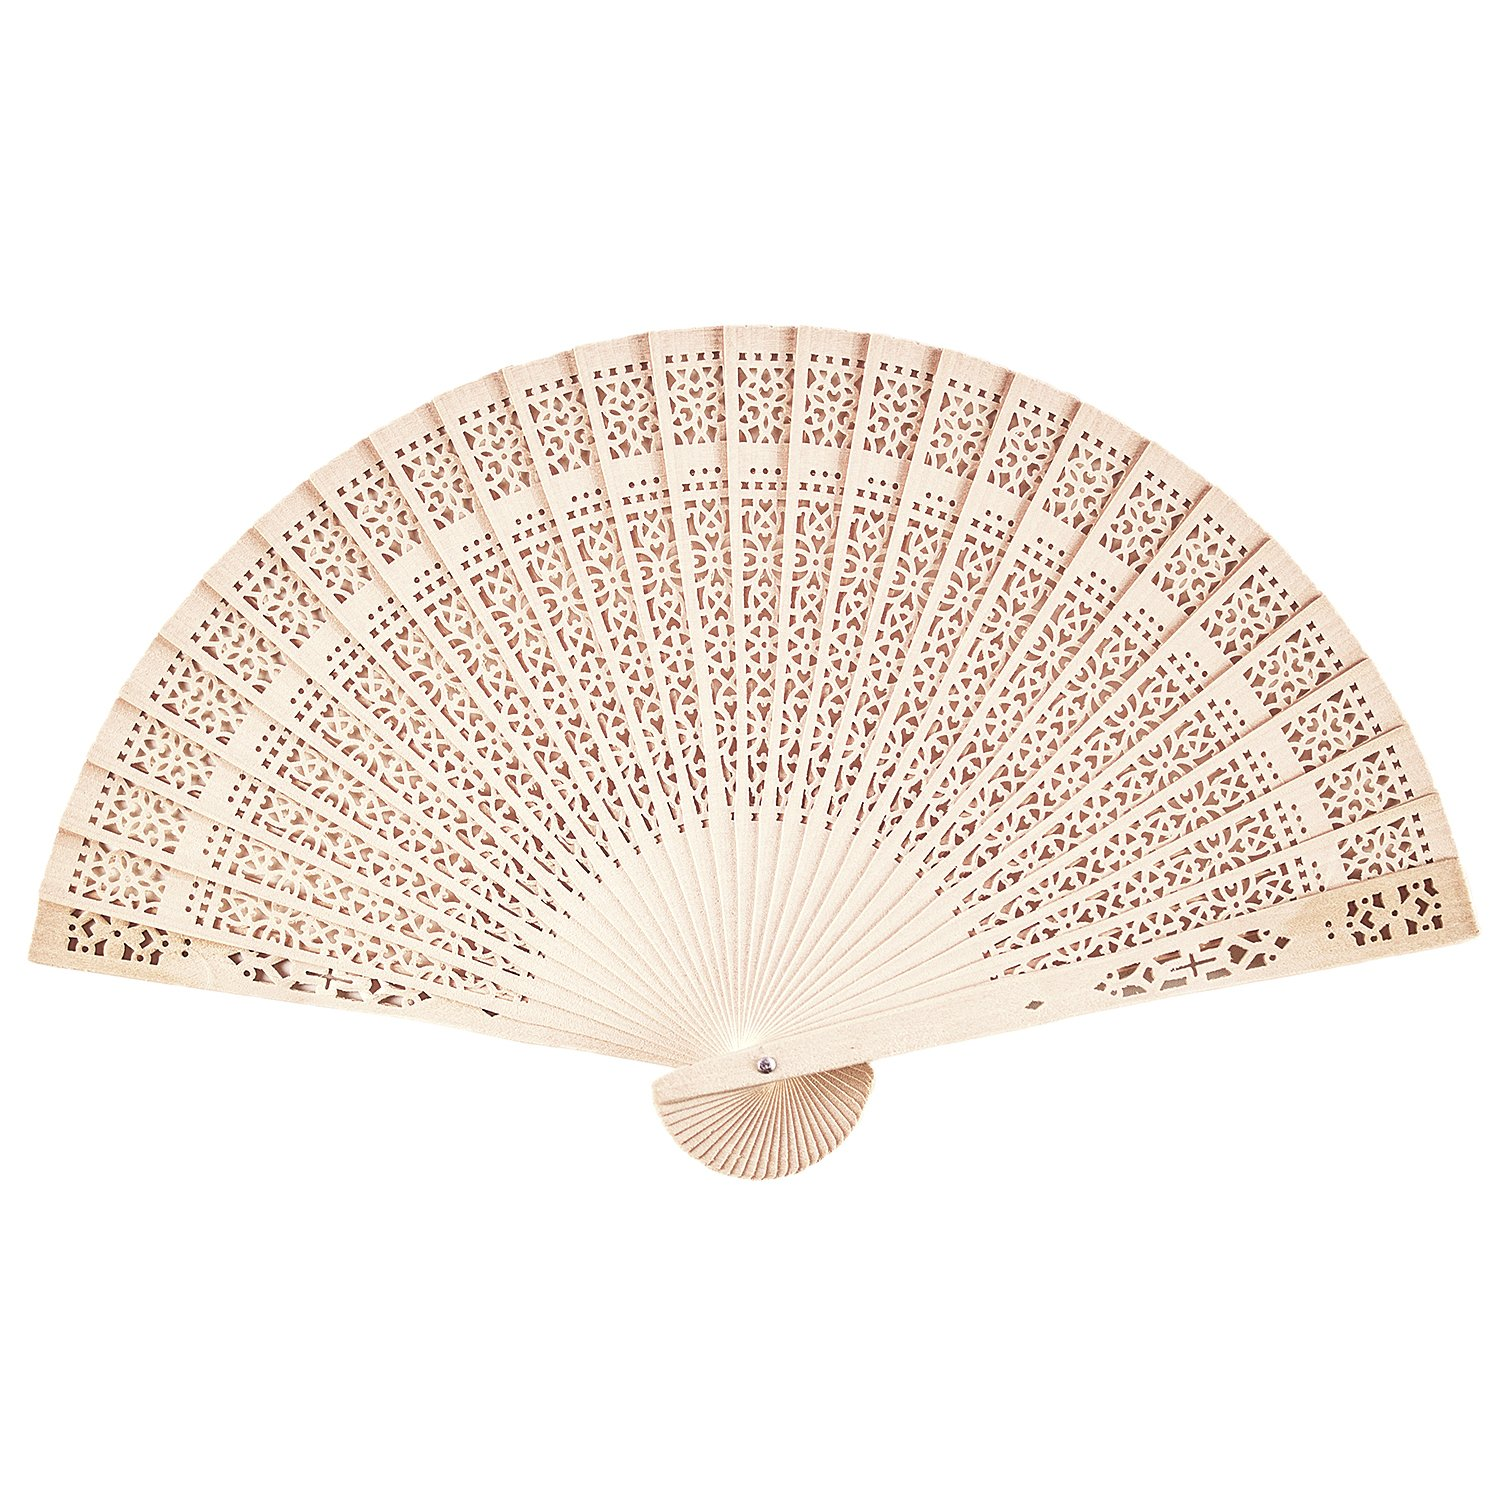 Chinese Sandalwood Scented Wooden Openwork Personal Hand Held Folding Fans for Wedding Decoration, Birthdays, Home Gifts by Super Z Outlet (12 Pack)